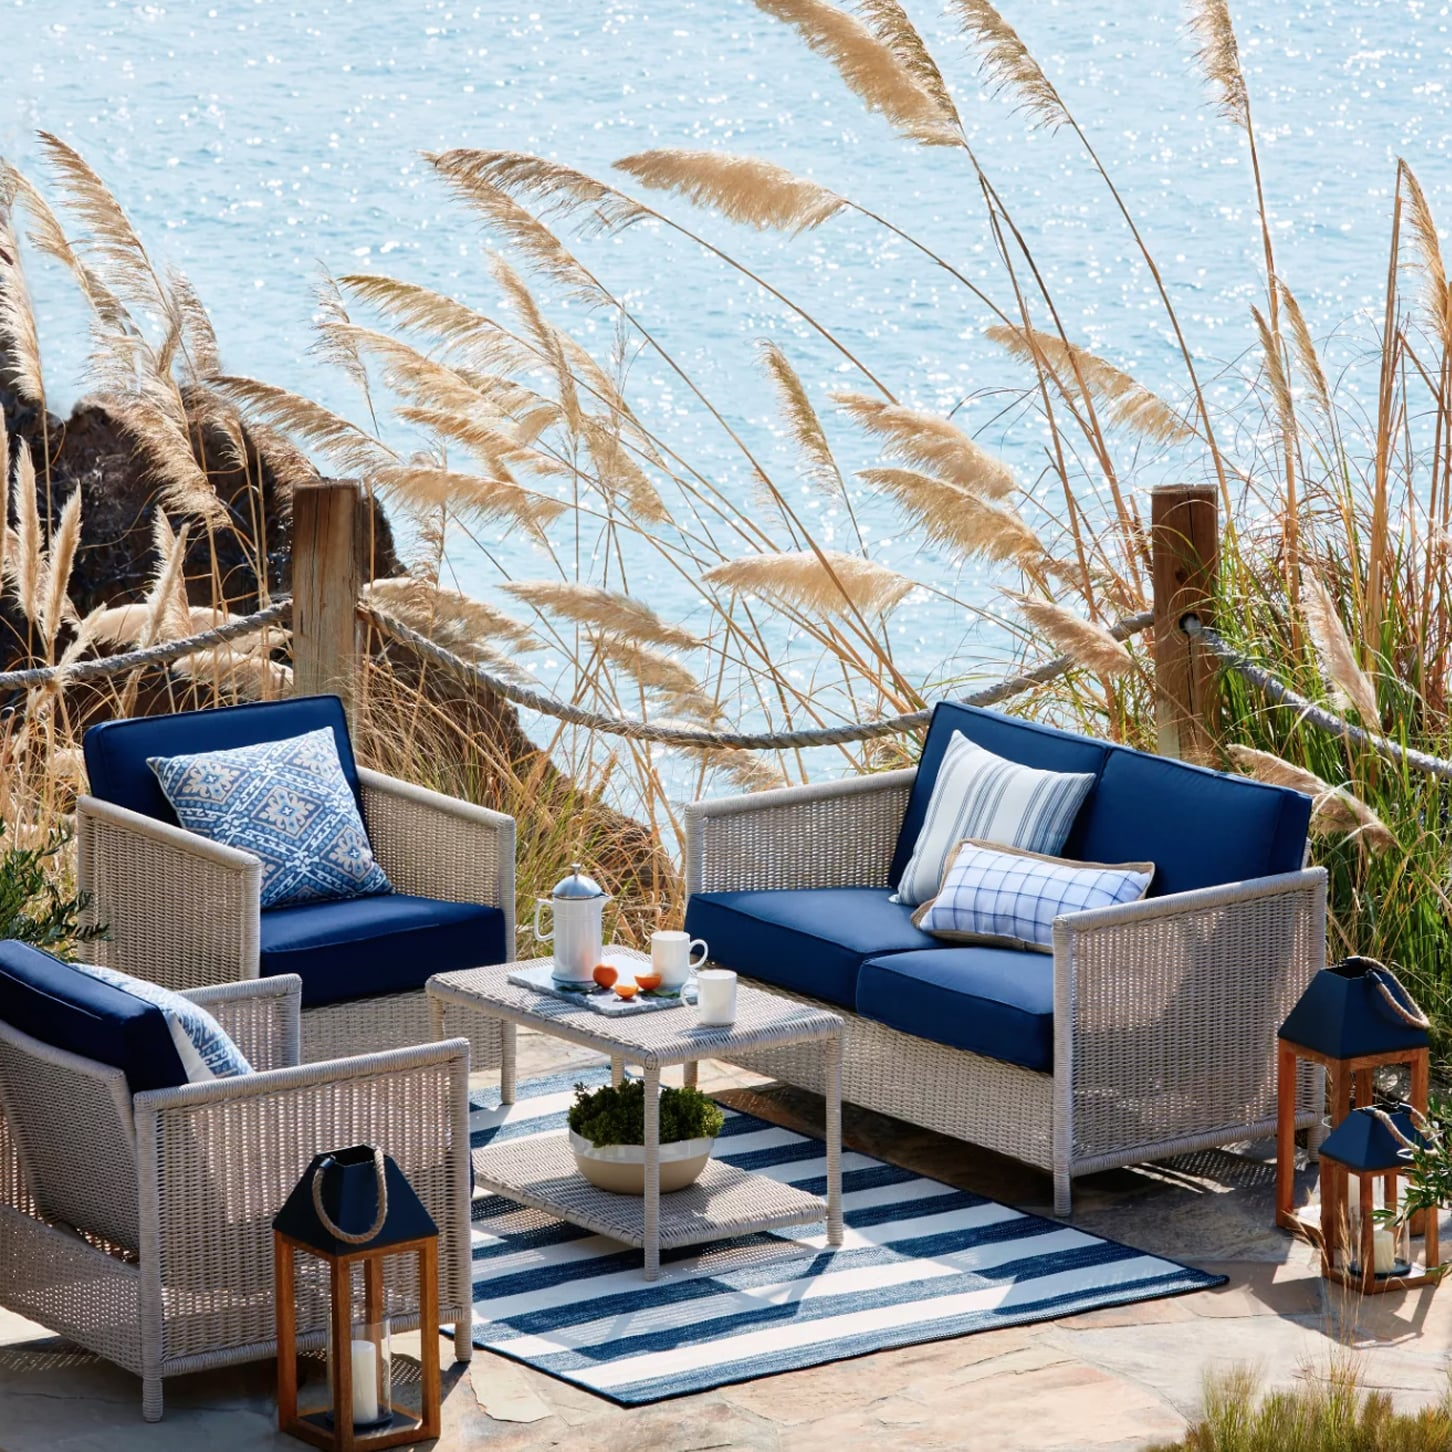 Target Memorial Day Outdoor Furniture Sale 2019 Popsugar Home